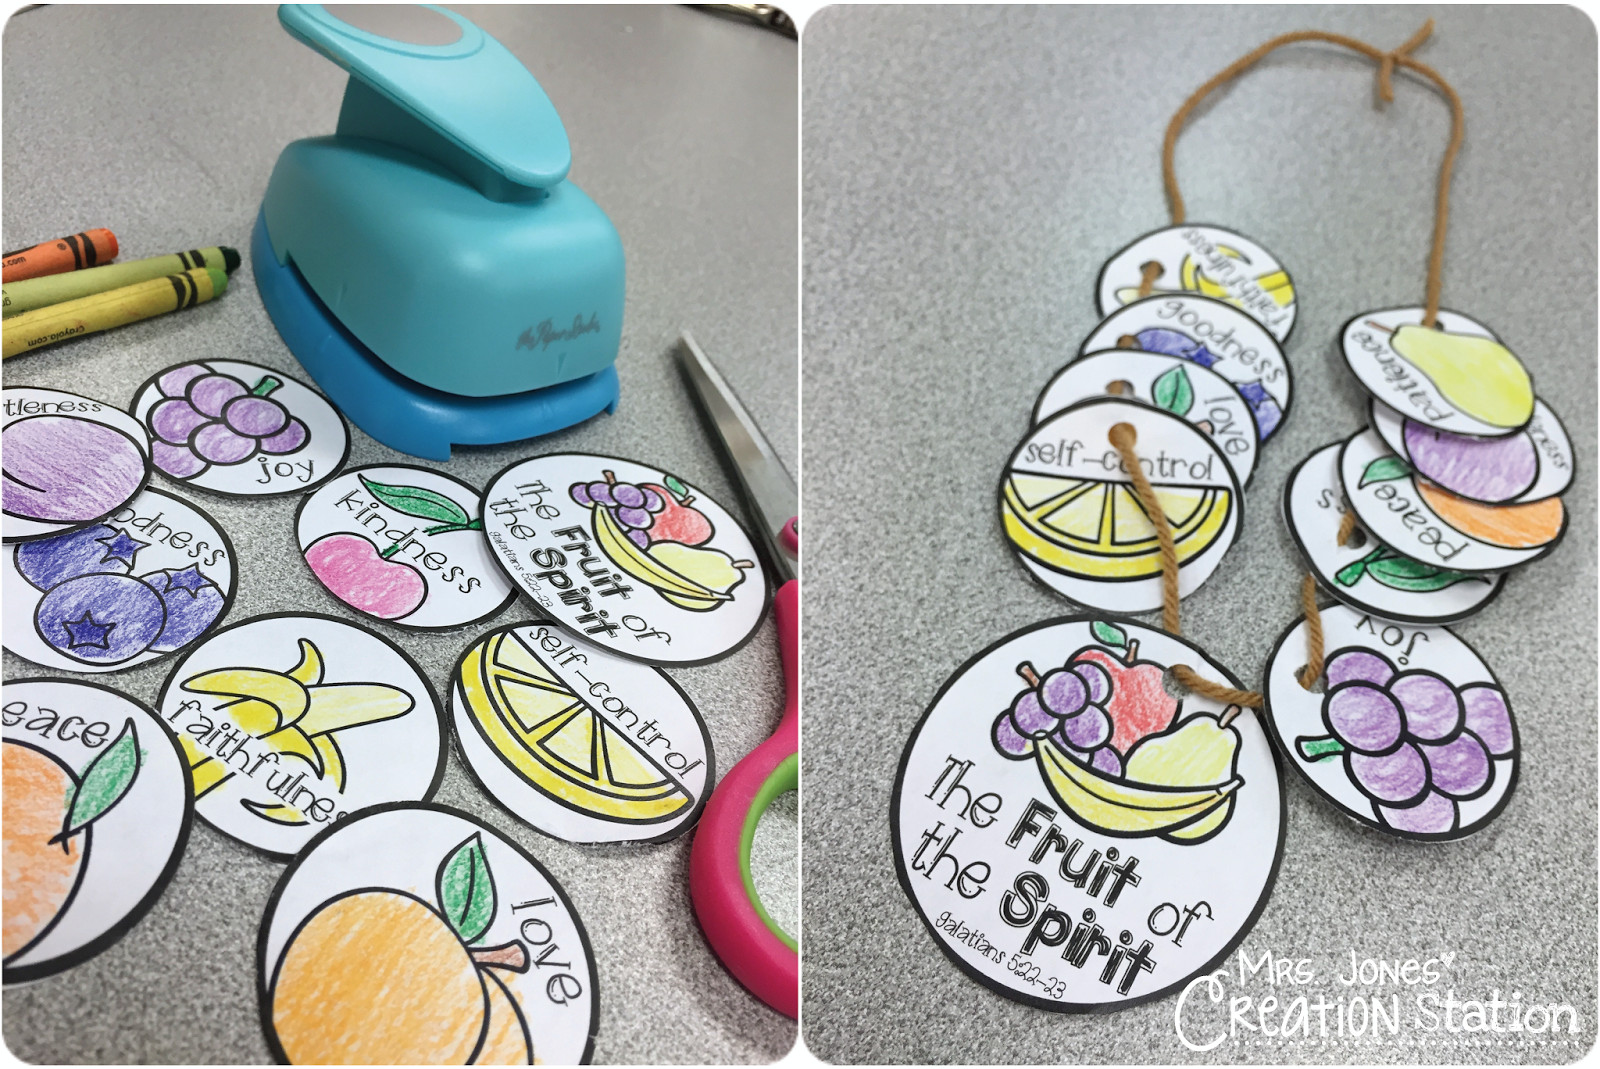 Best ideas about Fruit Of The Spirit Crafts For Kids . Save or Pin The Fruit of the Spirit Necklace Mrs Jones Creation Now.